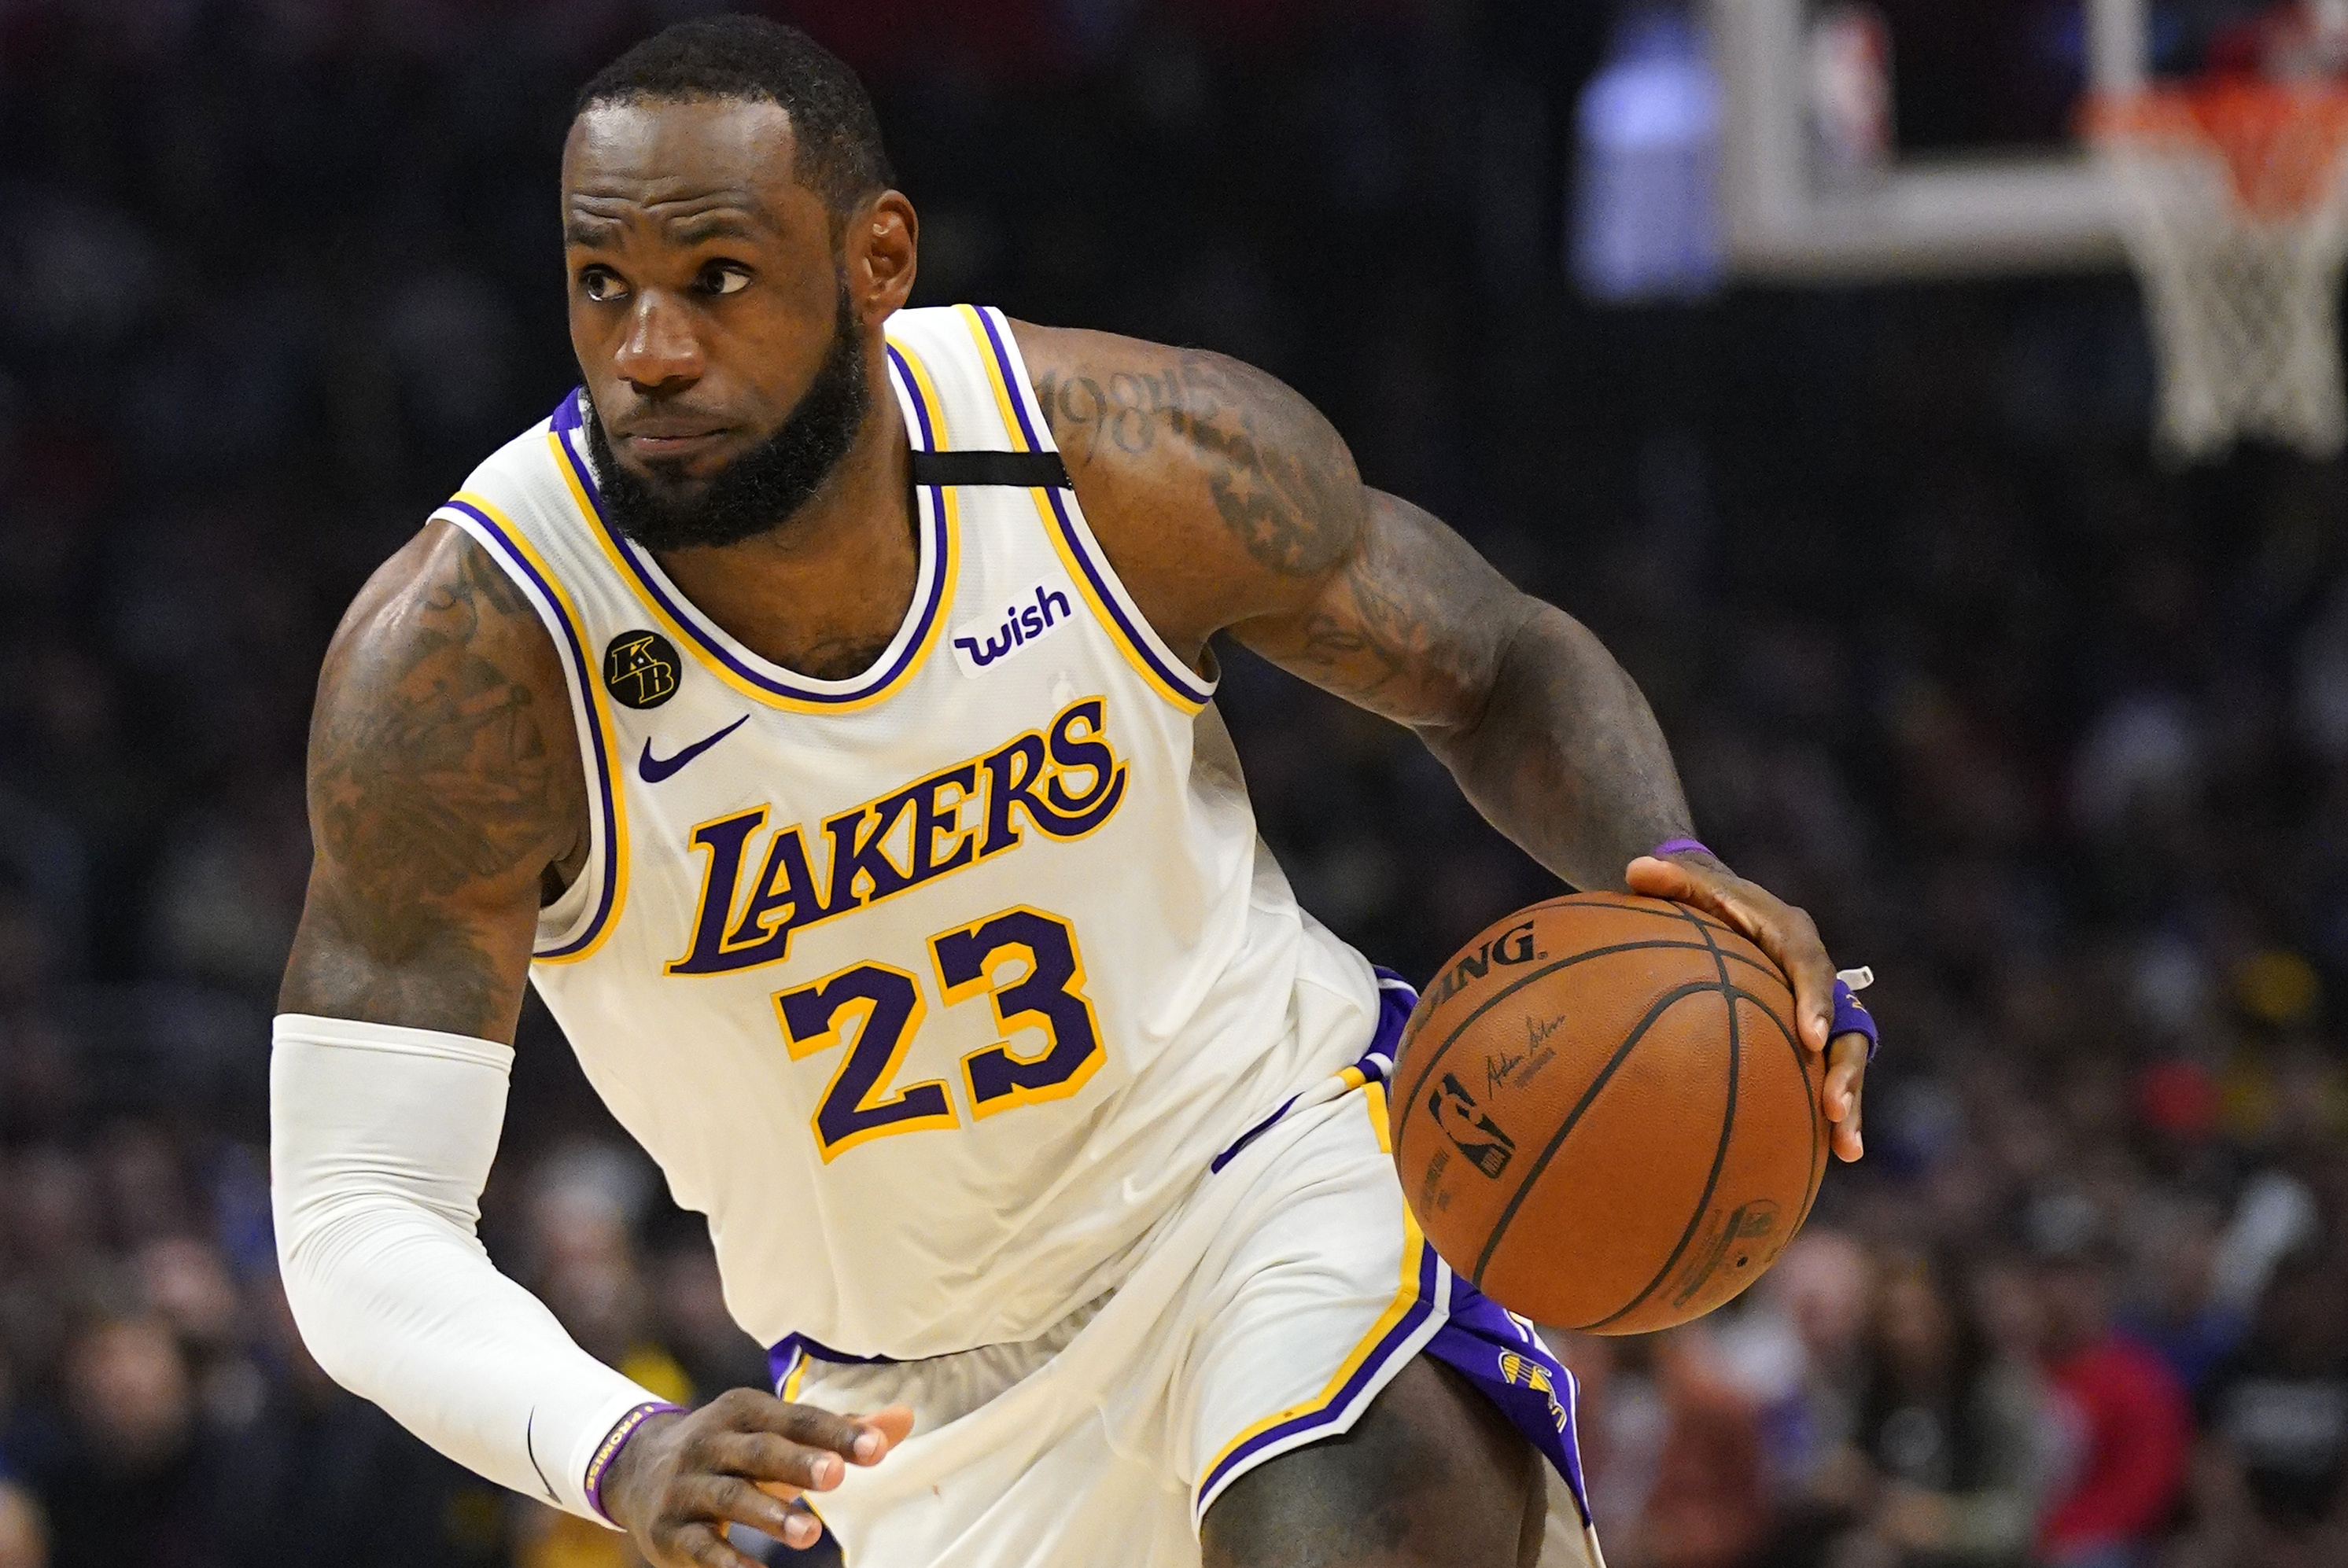 Video Lebron James Narrates Nike Ad About Sports Returning From Covid 19 Hiatus Bleacher Report Latest News Videos And Highlights